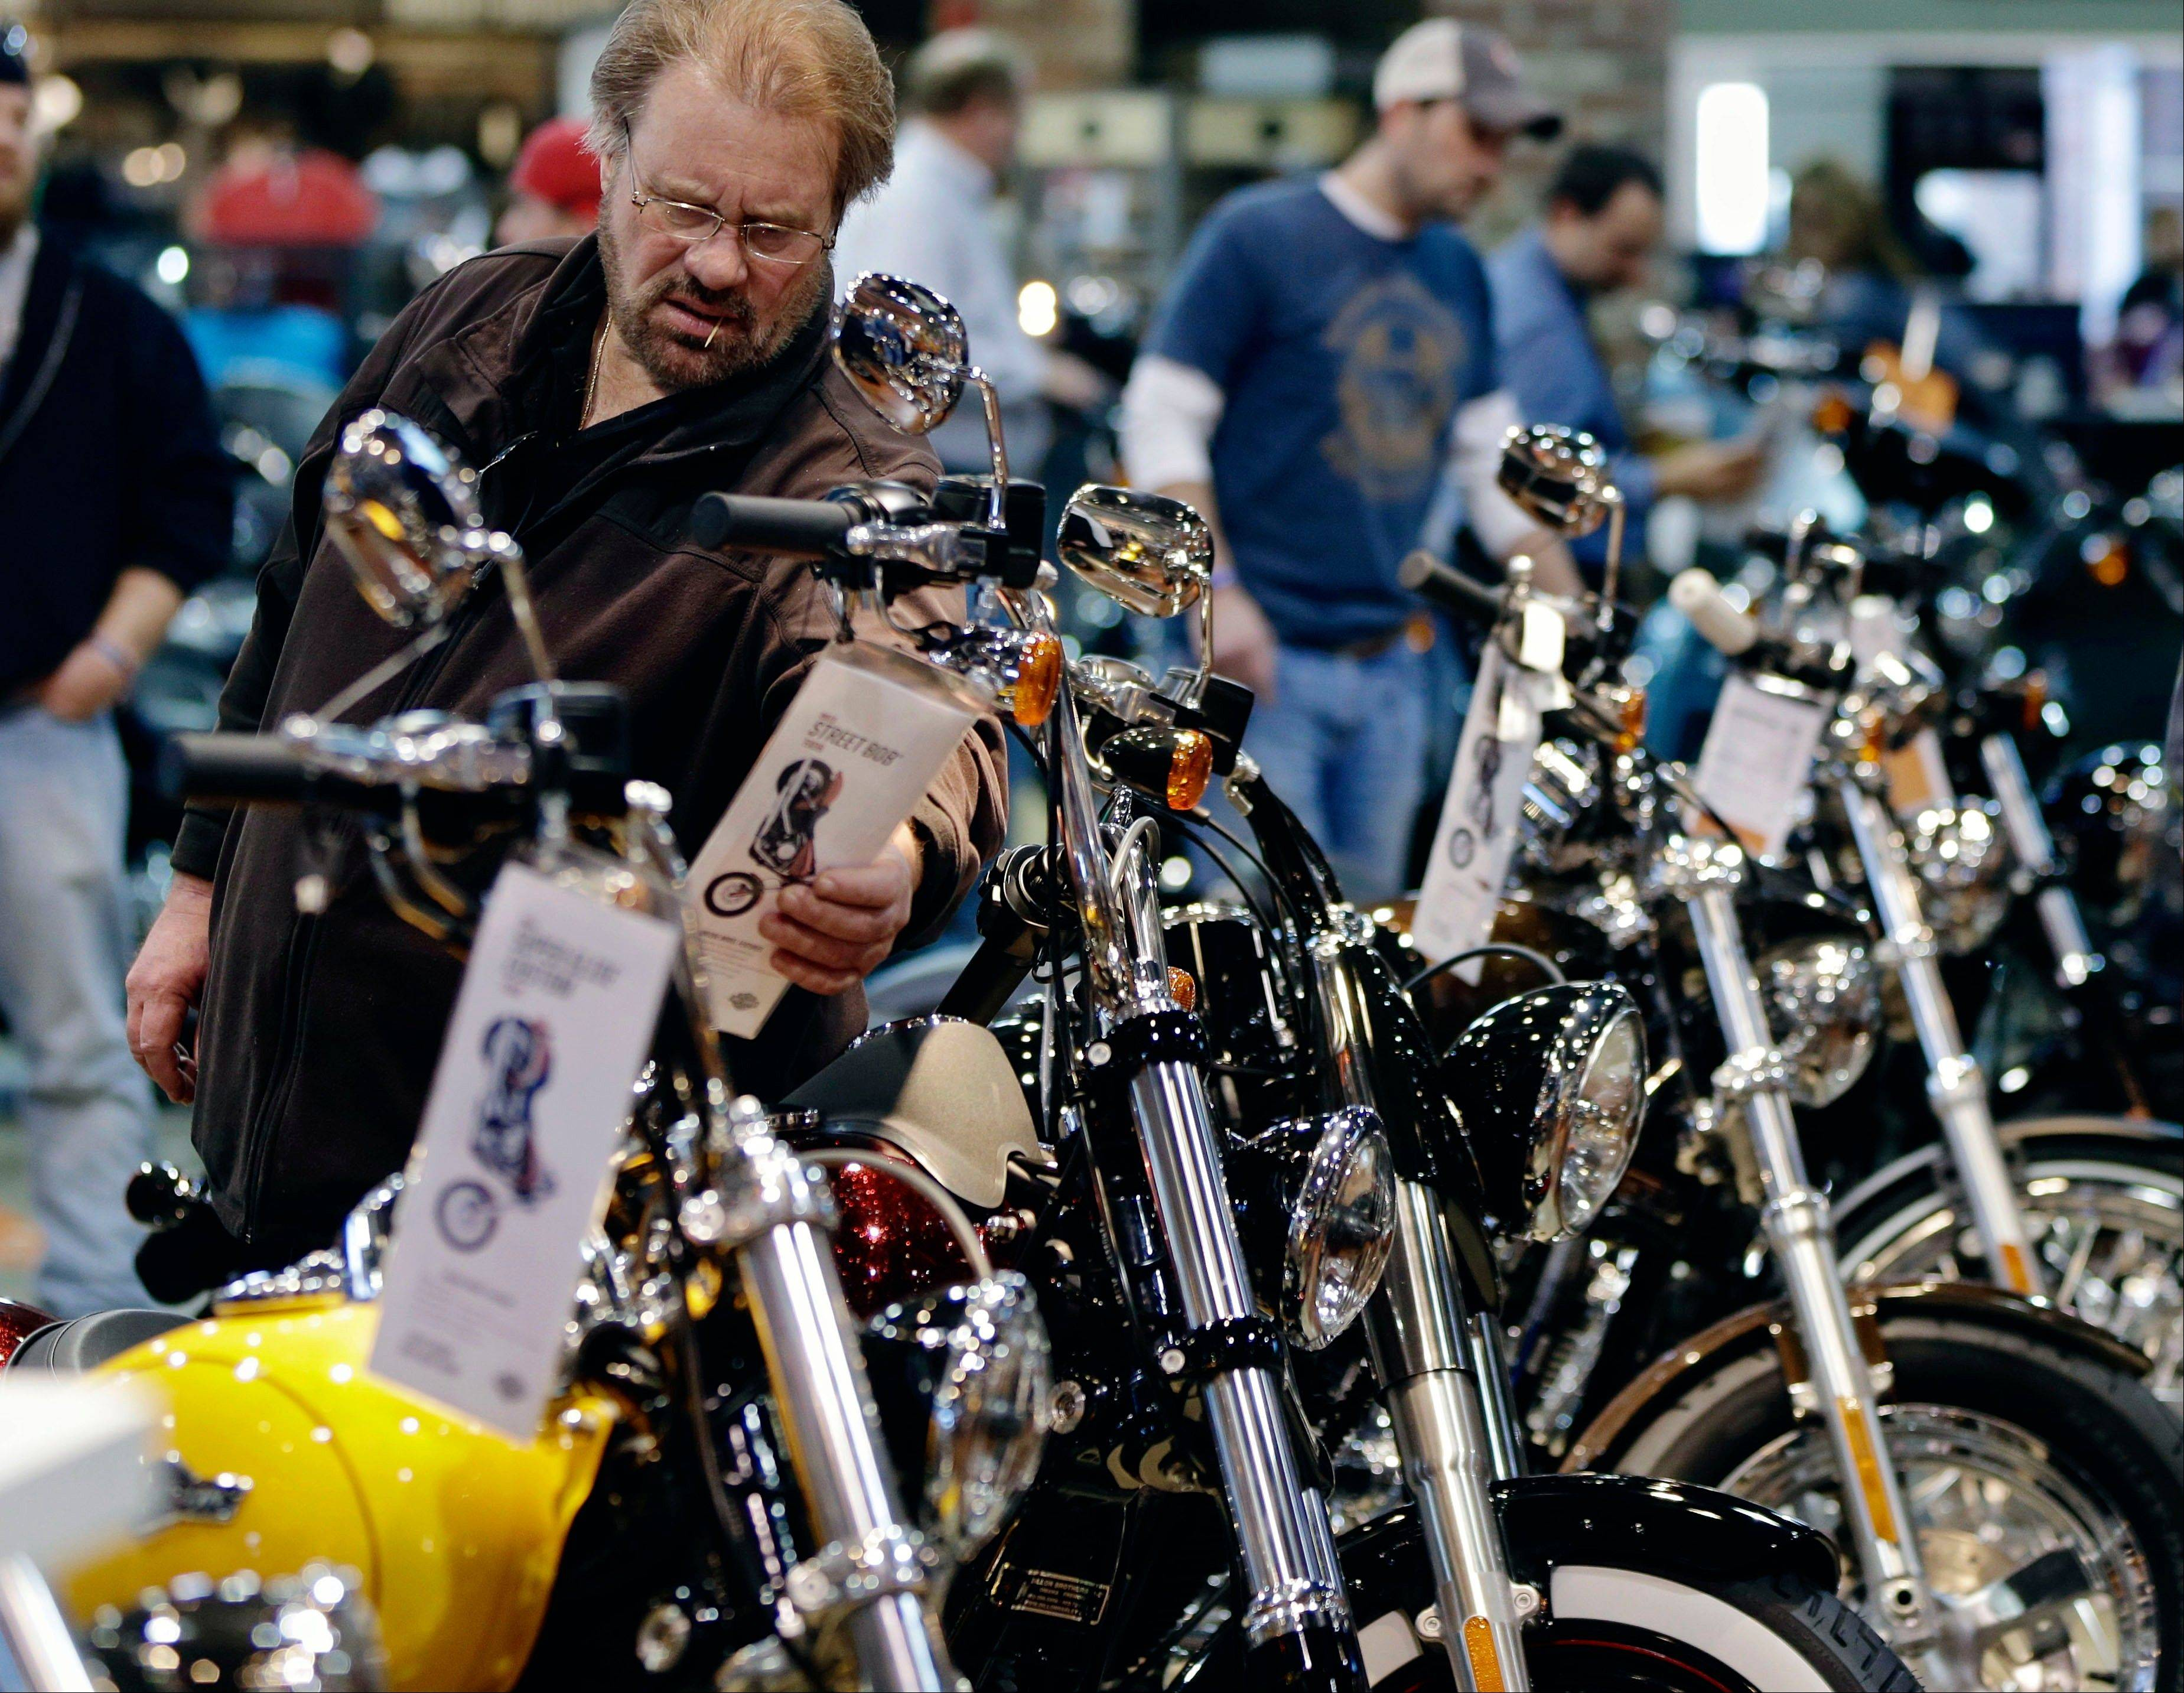 A man examines the tag of a motorcycle at the Dillon Brothers Harley Davidson dealership in Omaha, Neb. Harley-Davidson Inc. reported strong quarterly financial results before the market opened on Thursday.